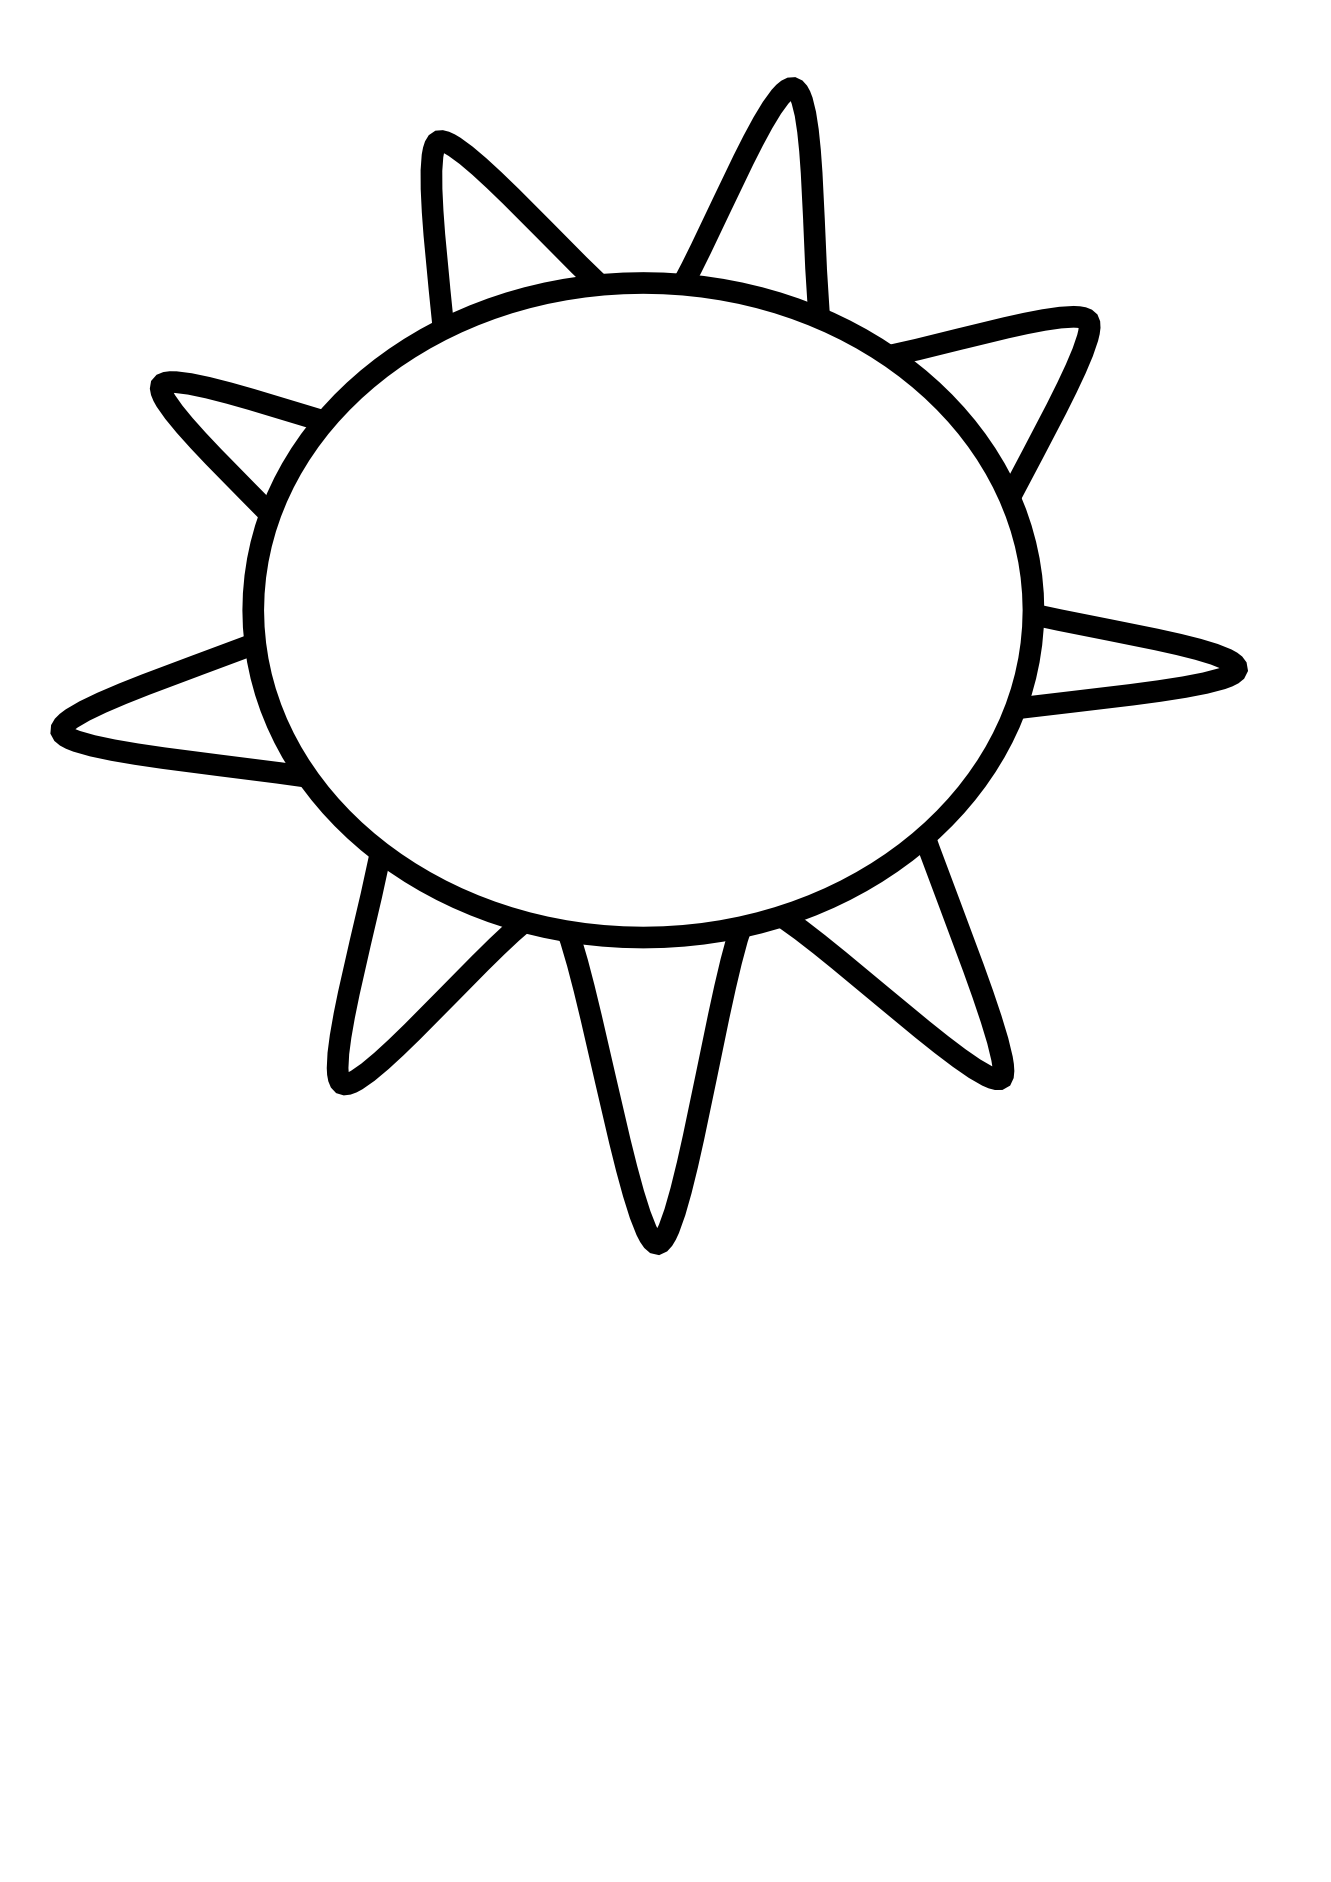 Rising sun free clipart black and white graphic free library Sun Clipart Black And White | Clipart Panda - Free Clipart Images graphic free library